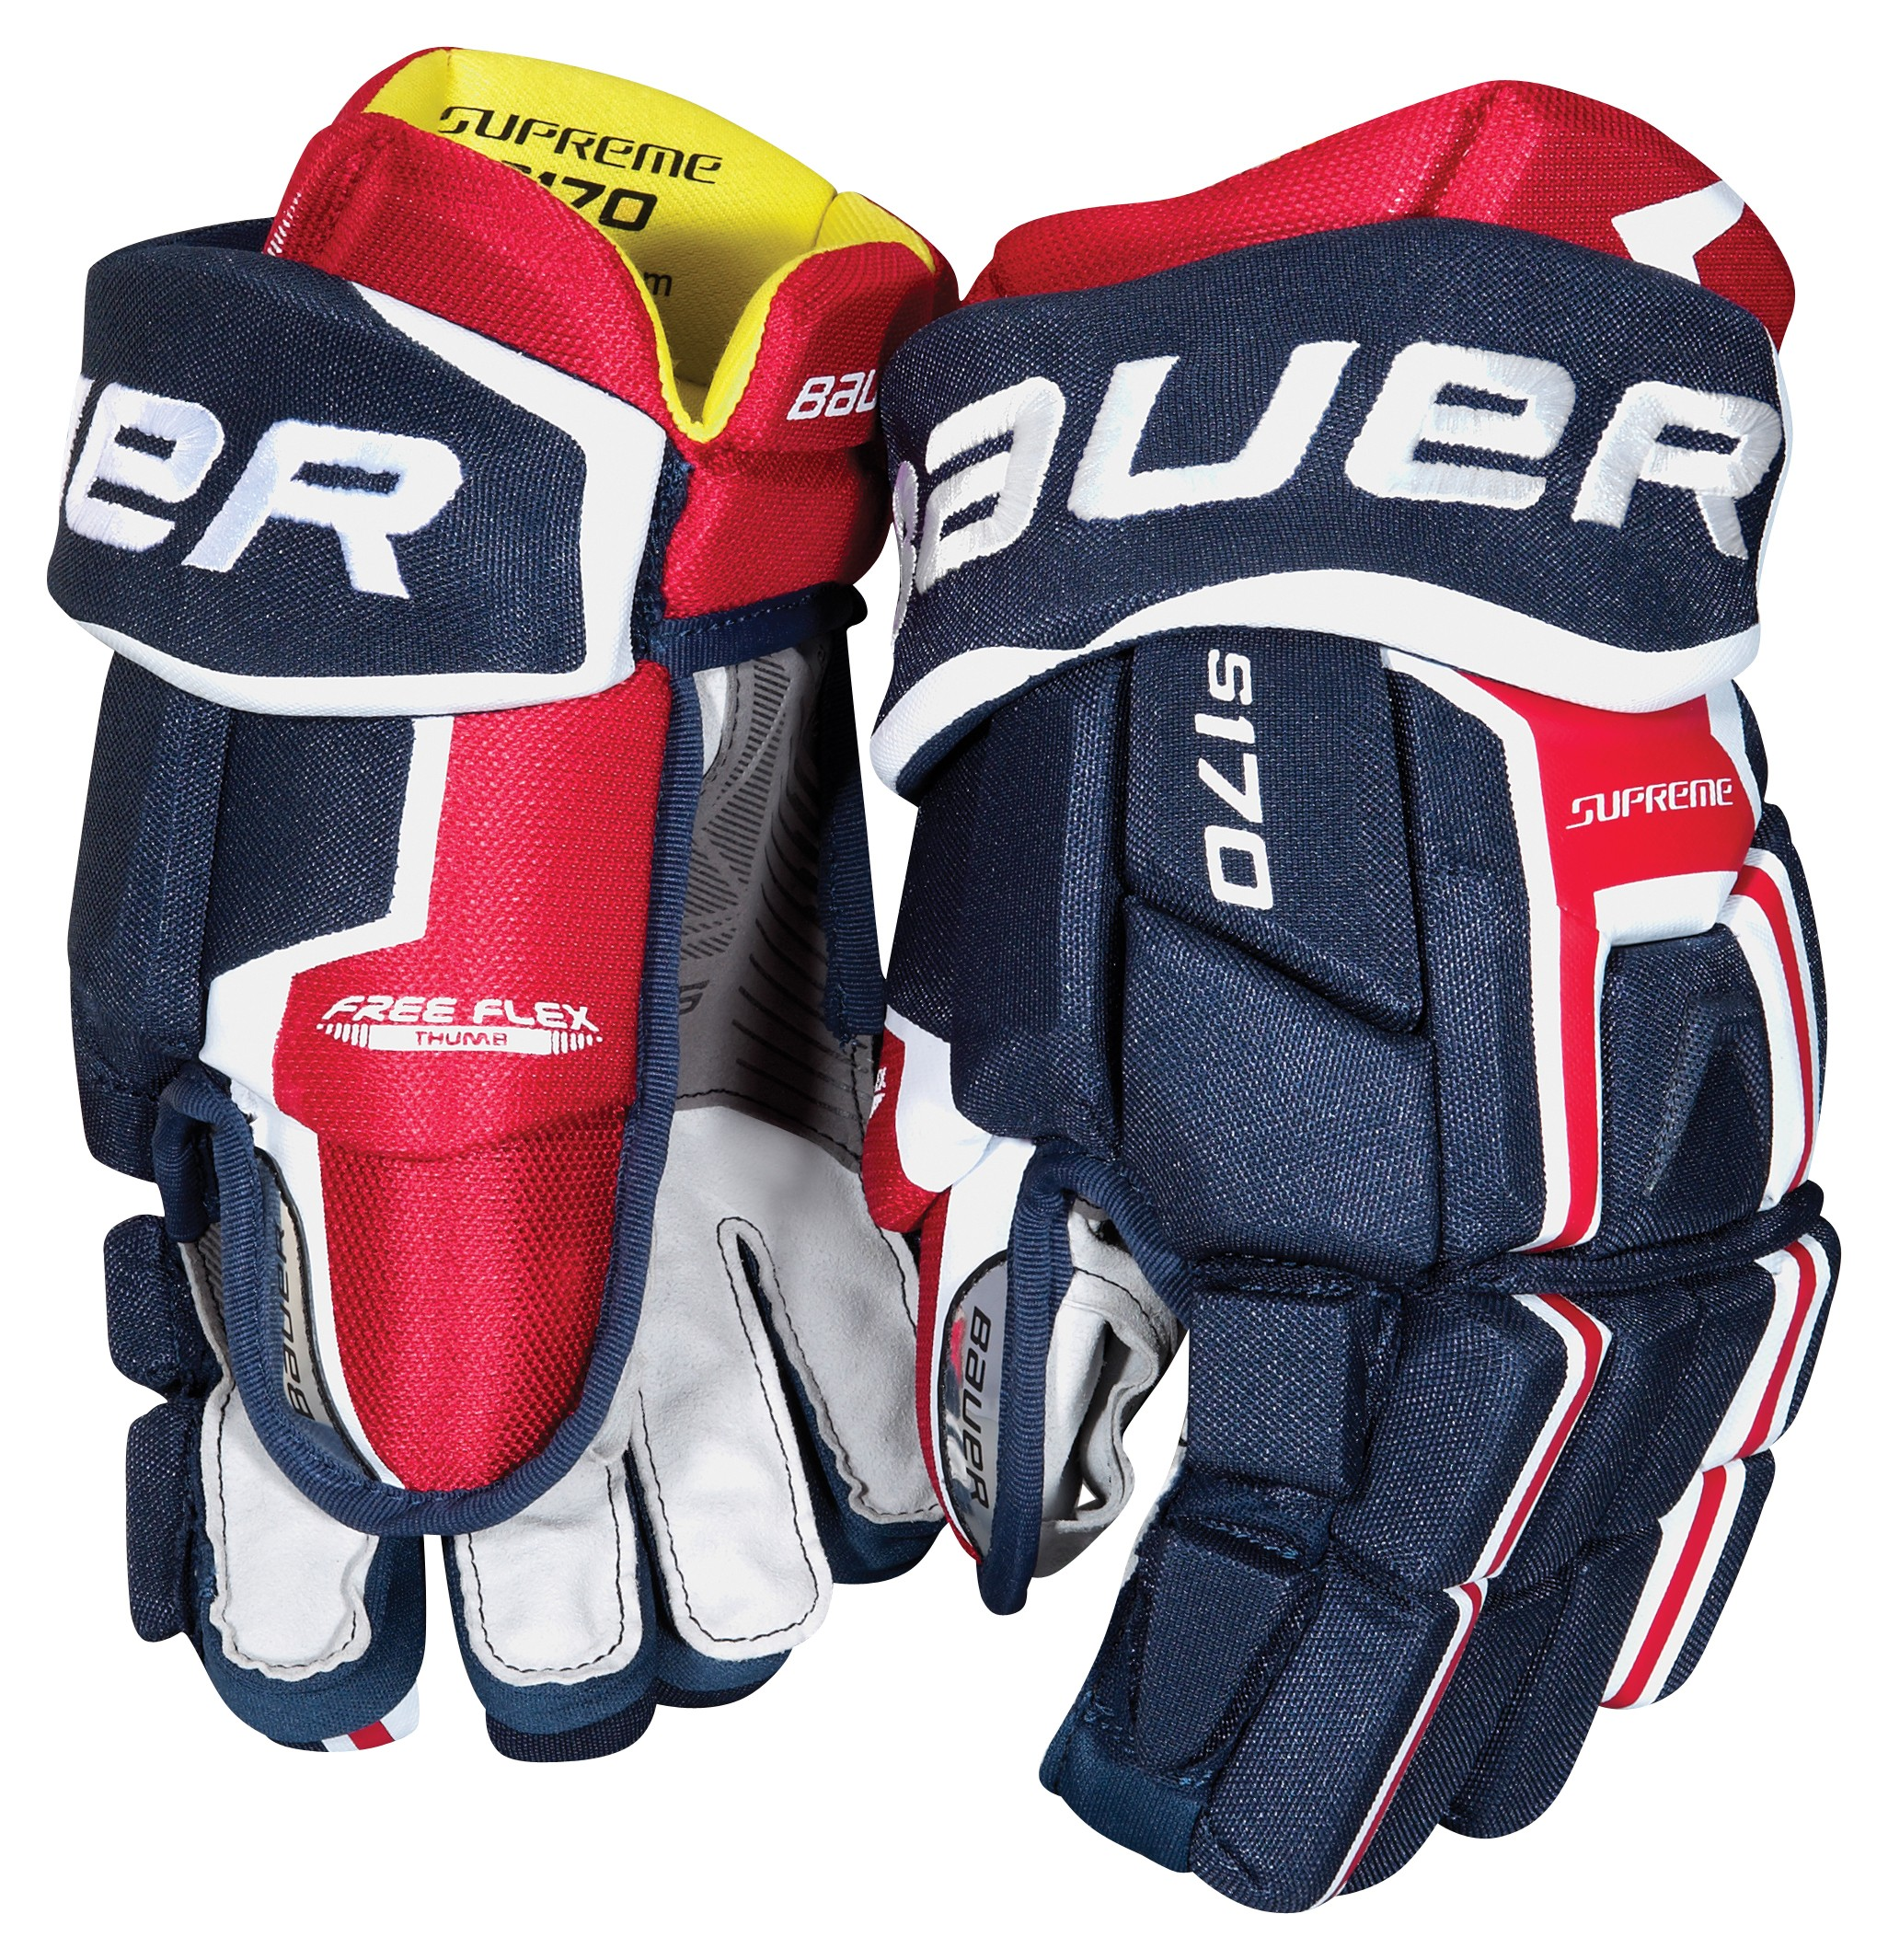 Hokejové rukavice BAUER SUPREME S170 junior